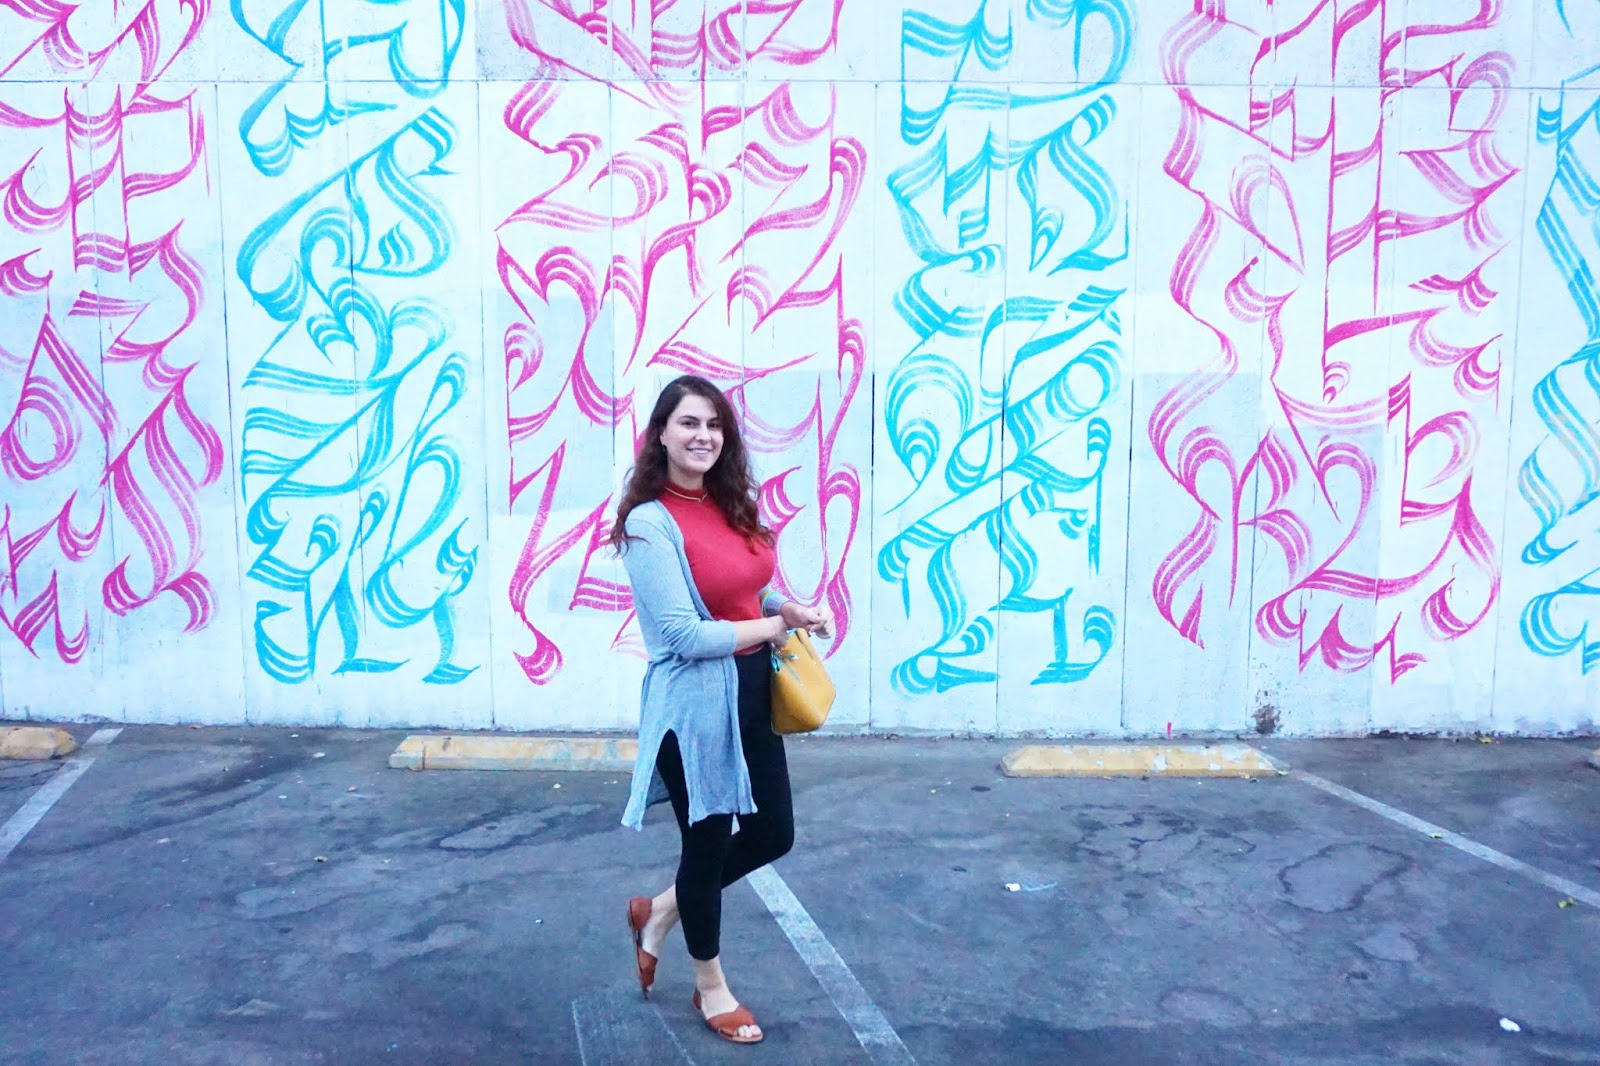 San Diego Blogger Downtown San Diego Travel influencer and California blogger shares her self-employment journey as a blogging coach, social media consultant.